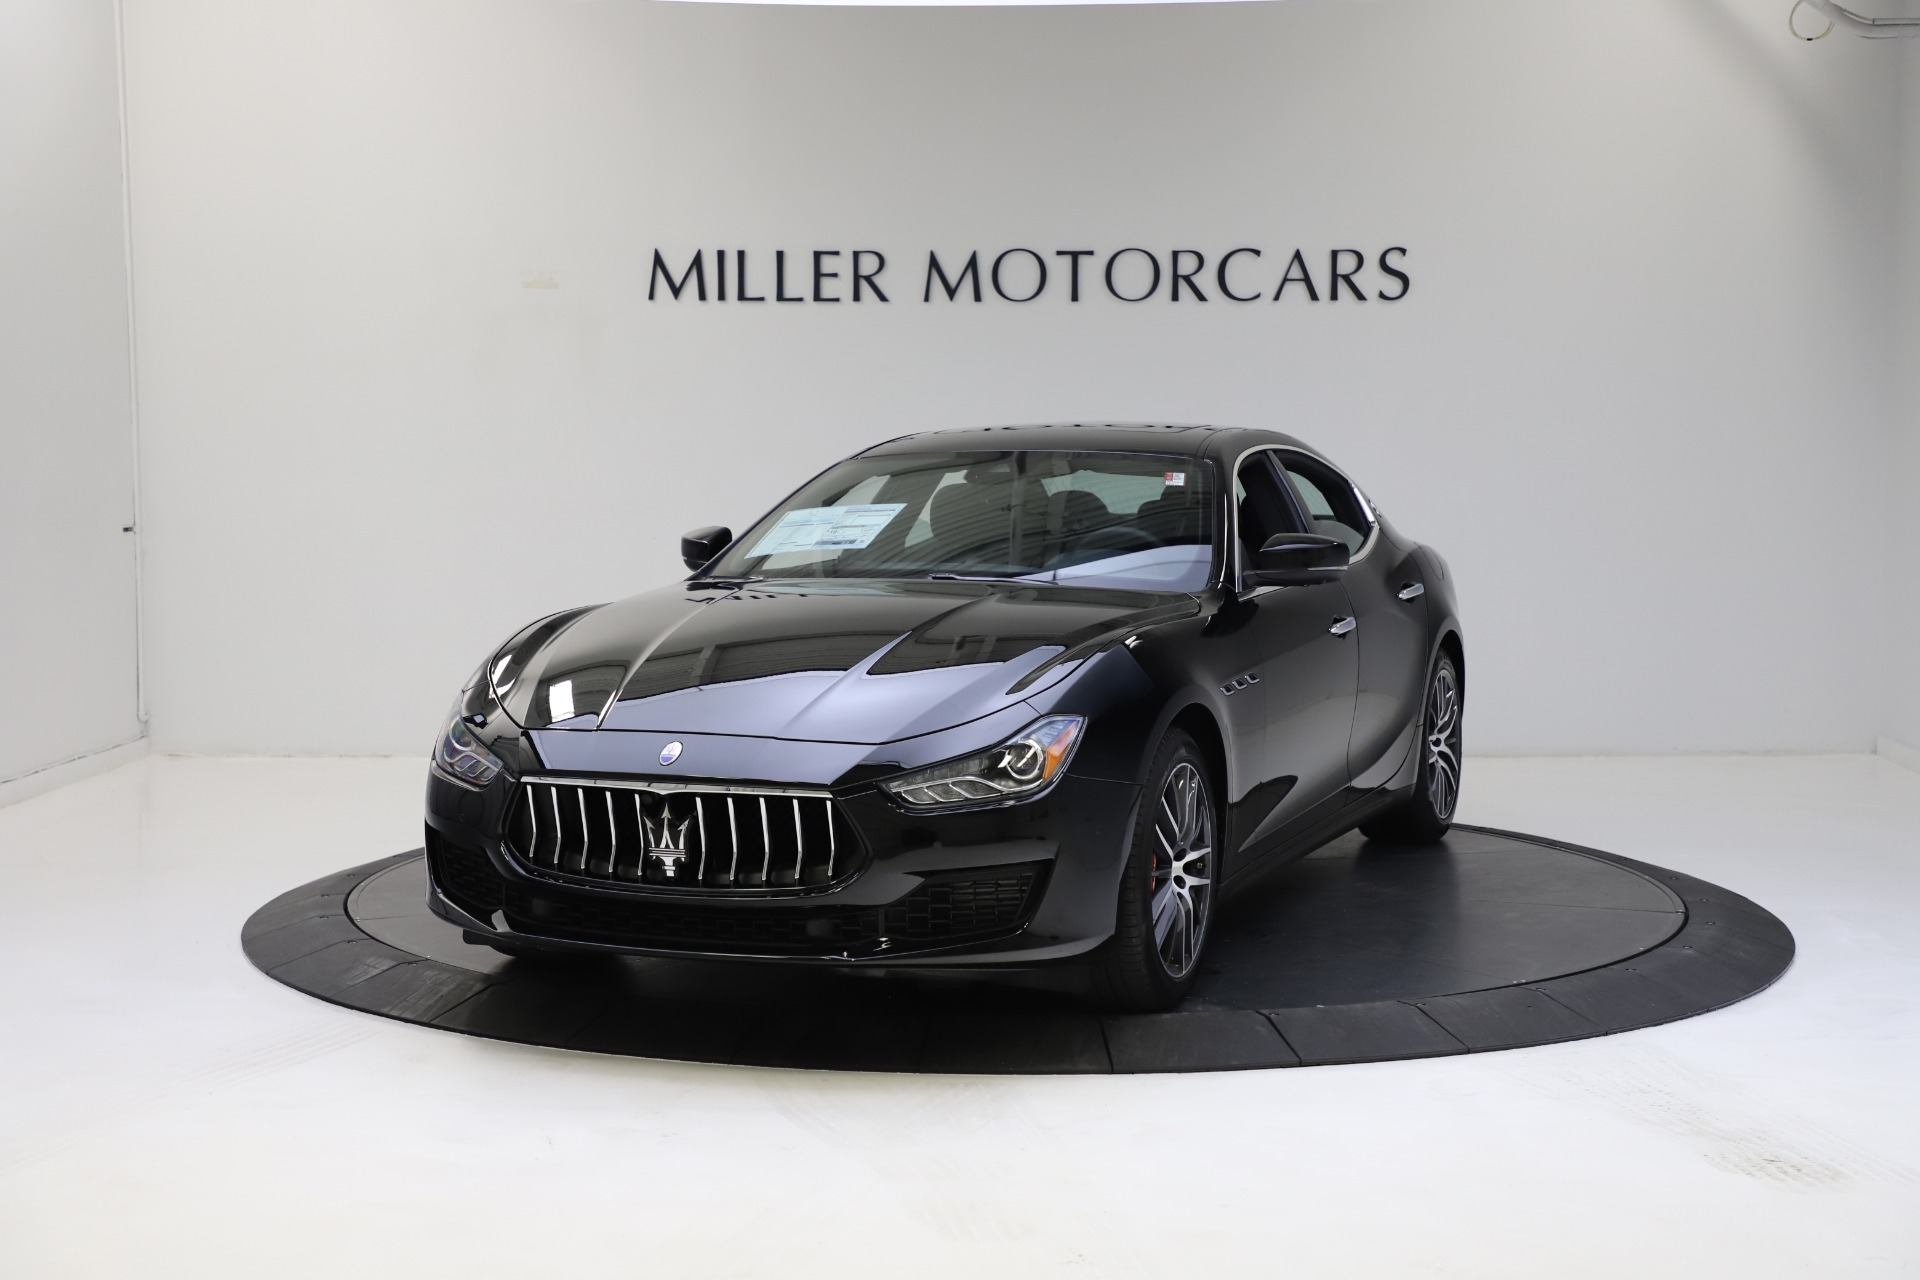 New 2021 Maserati Ghibli S Q4 for sale $86,654 at McLaren Greenwich in Greenwich CT 06830 1